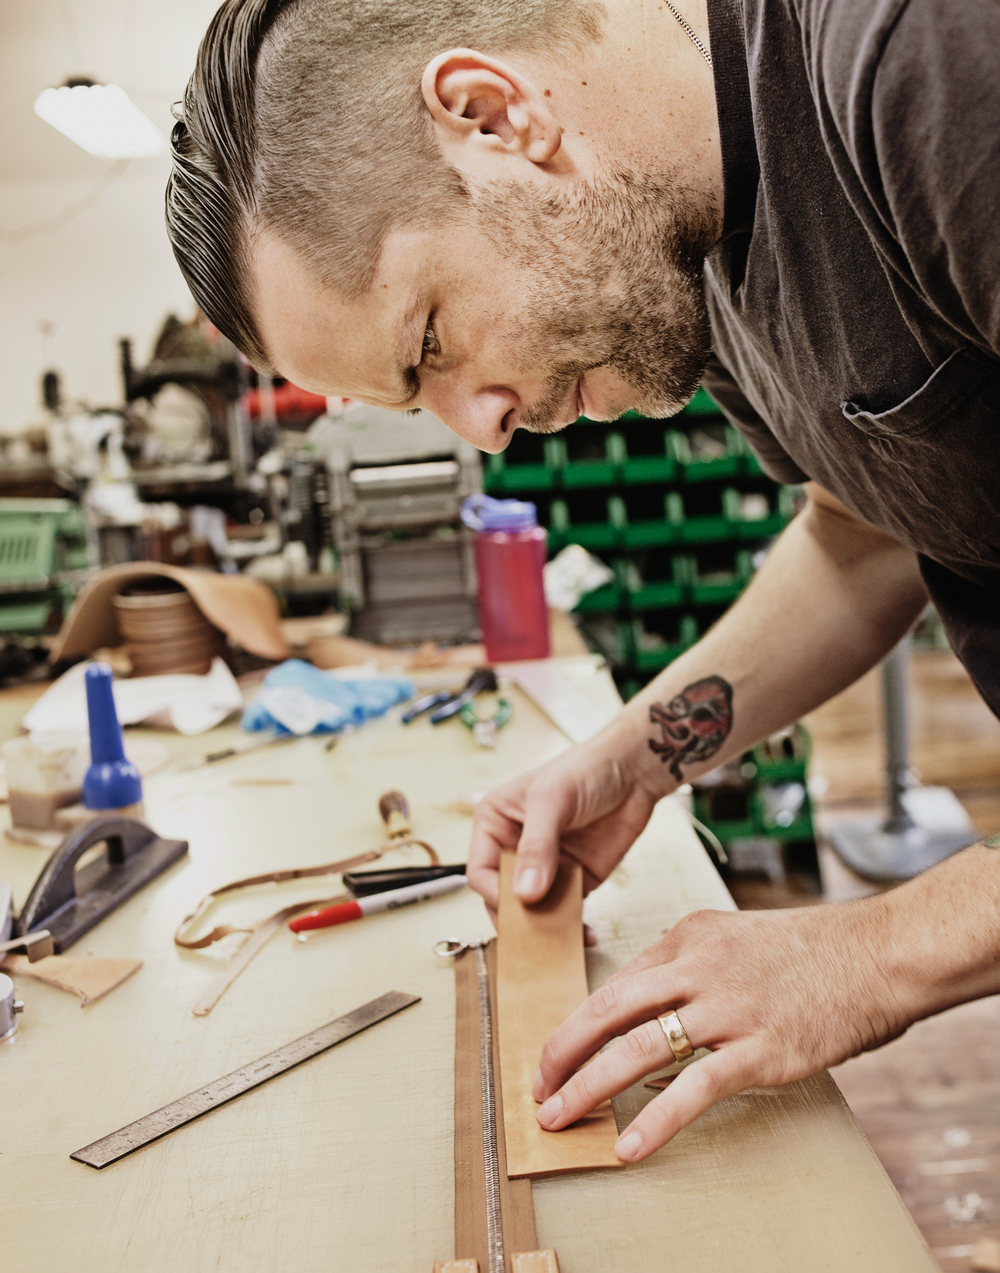 Emil Congdon of Emil Erwin at work in his Nashville, TN studio. Emil Erwin hand makes luxury leather bags and accessories.